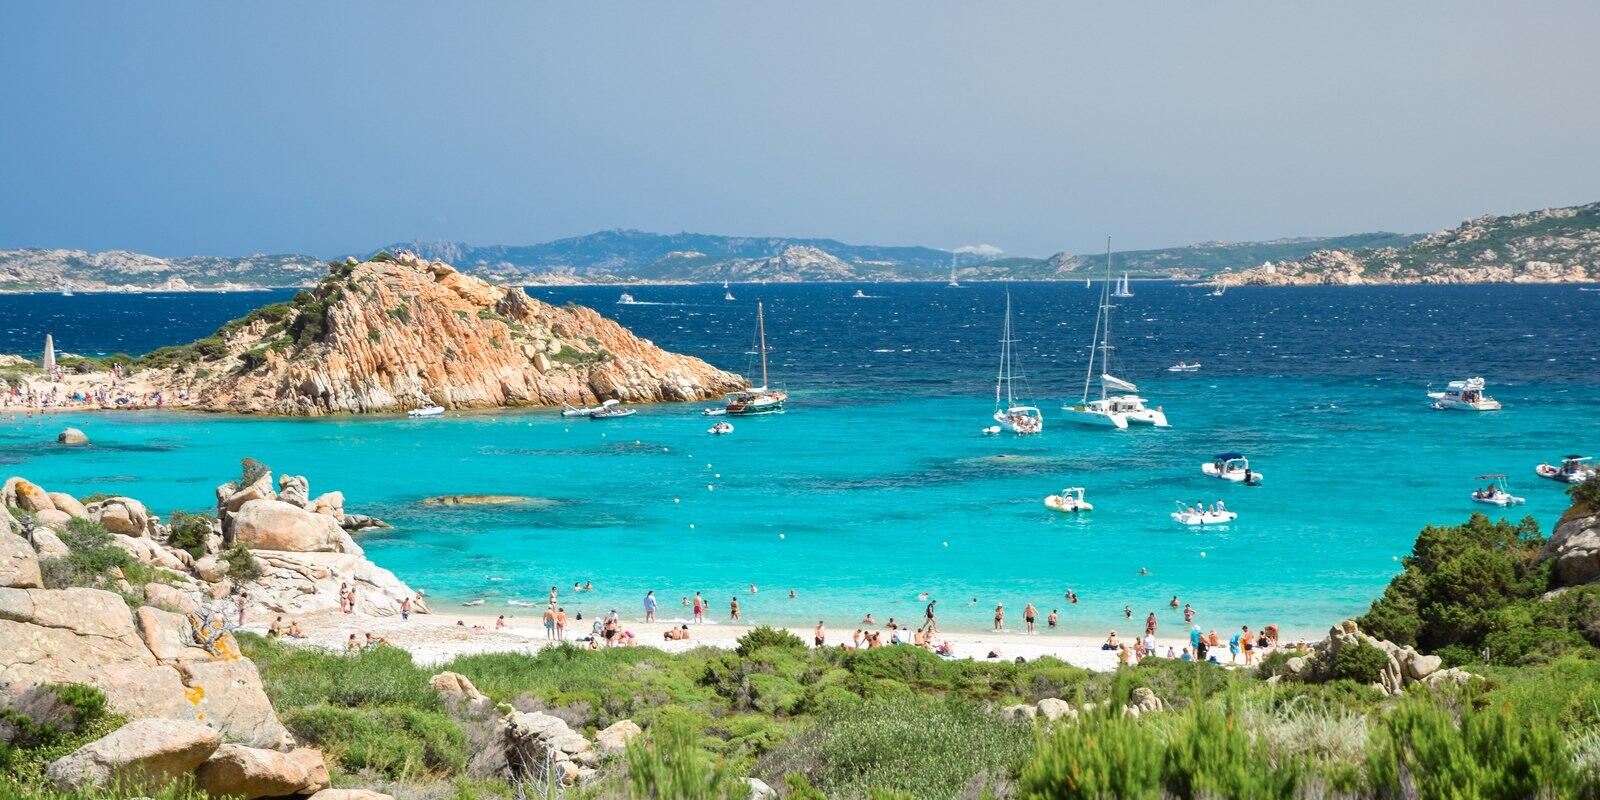 Week of sailing and holidays between northern Sardinia and southern Corsica.